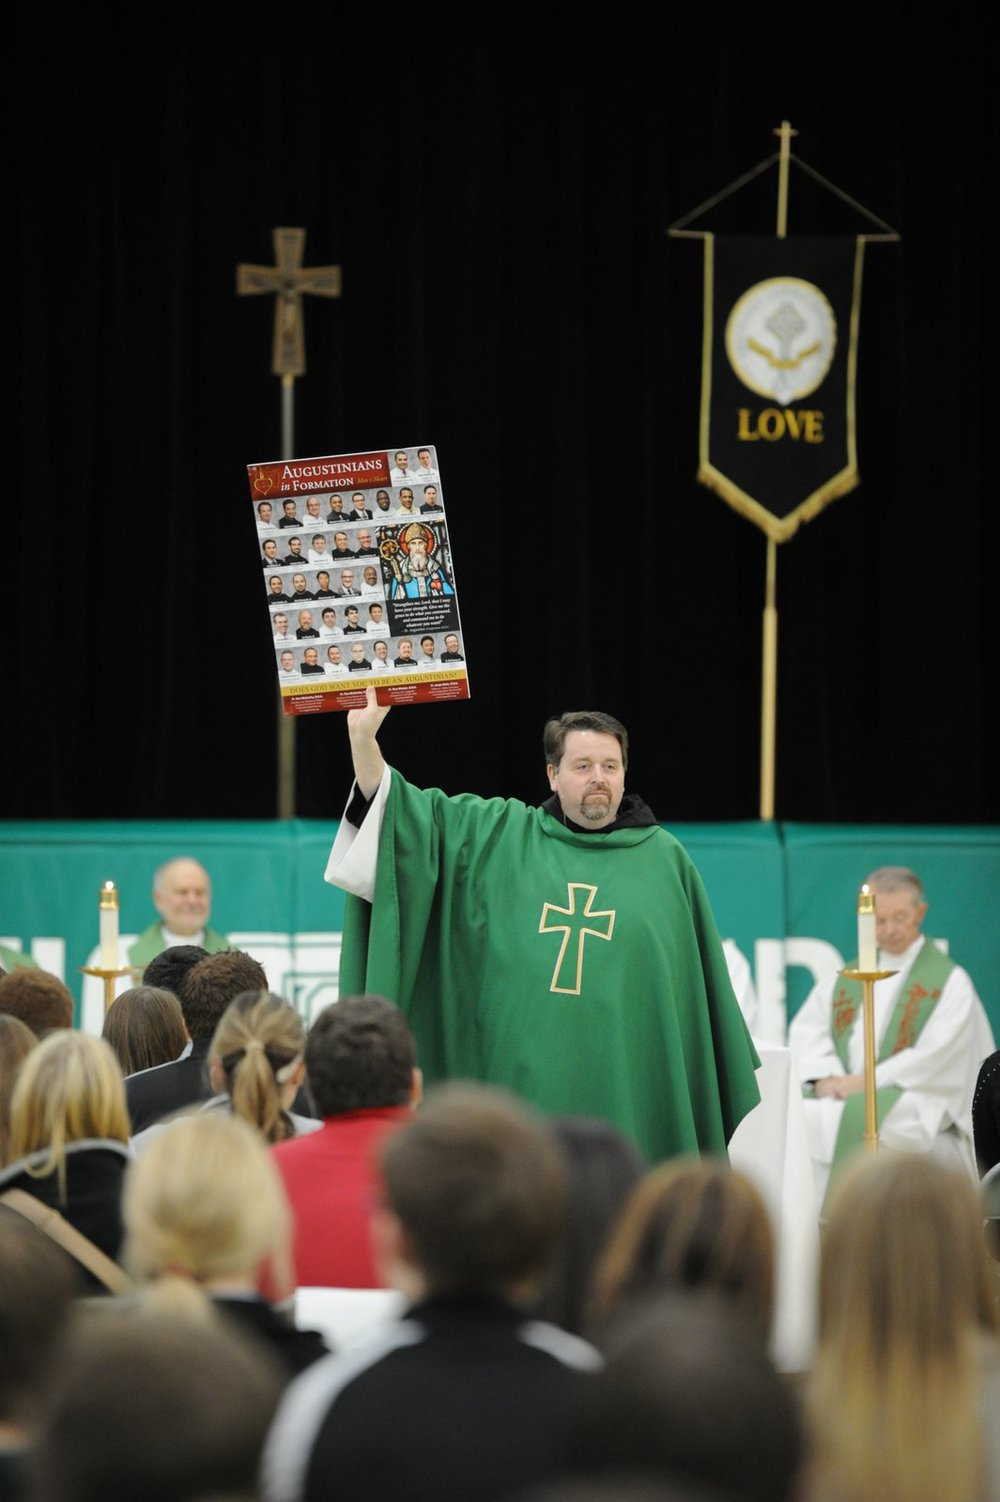 Fr. Tom talks about vocations and gifts with the students at Providence Catholic High School in New Lenox, Illinois